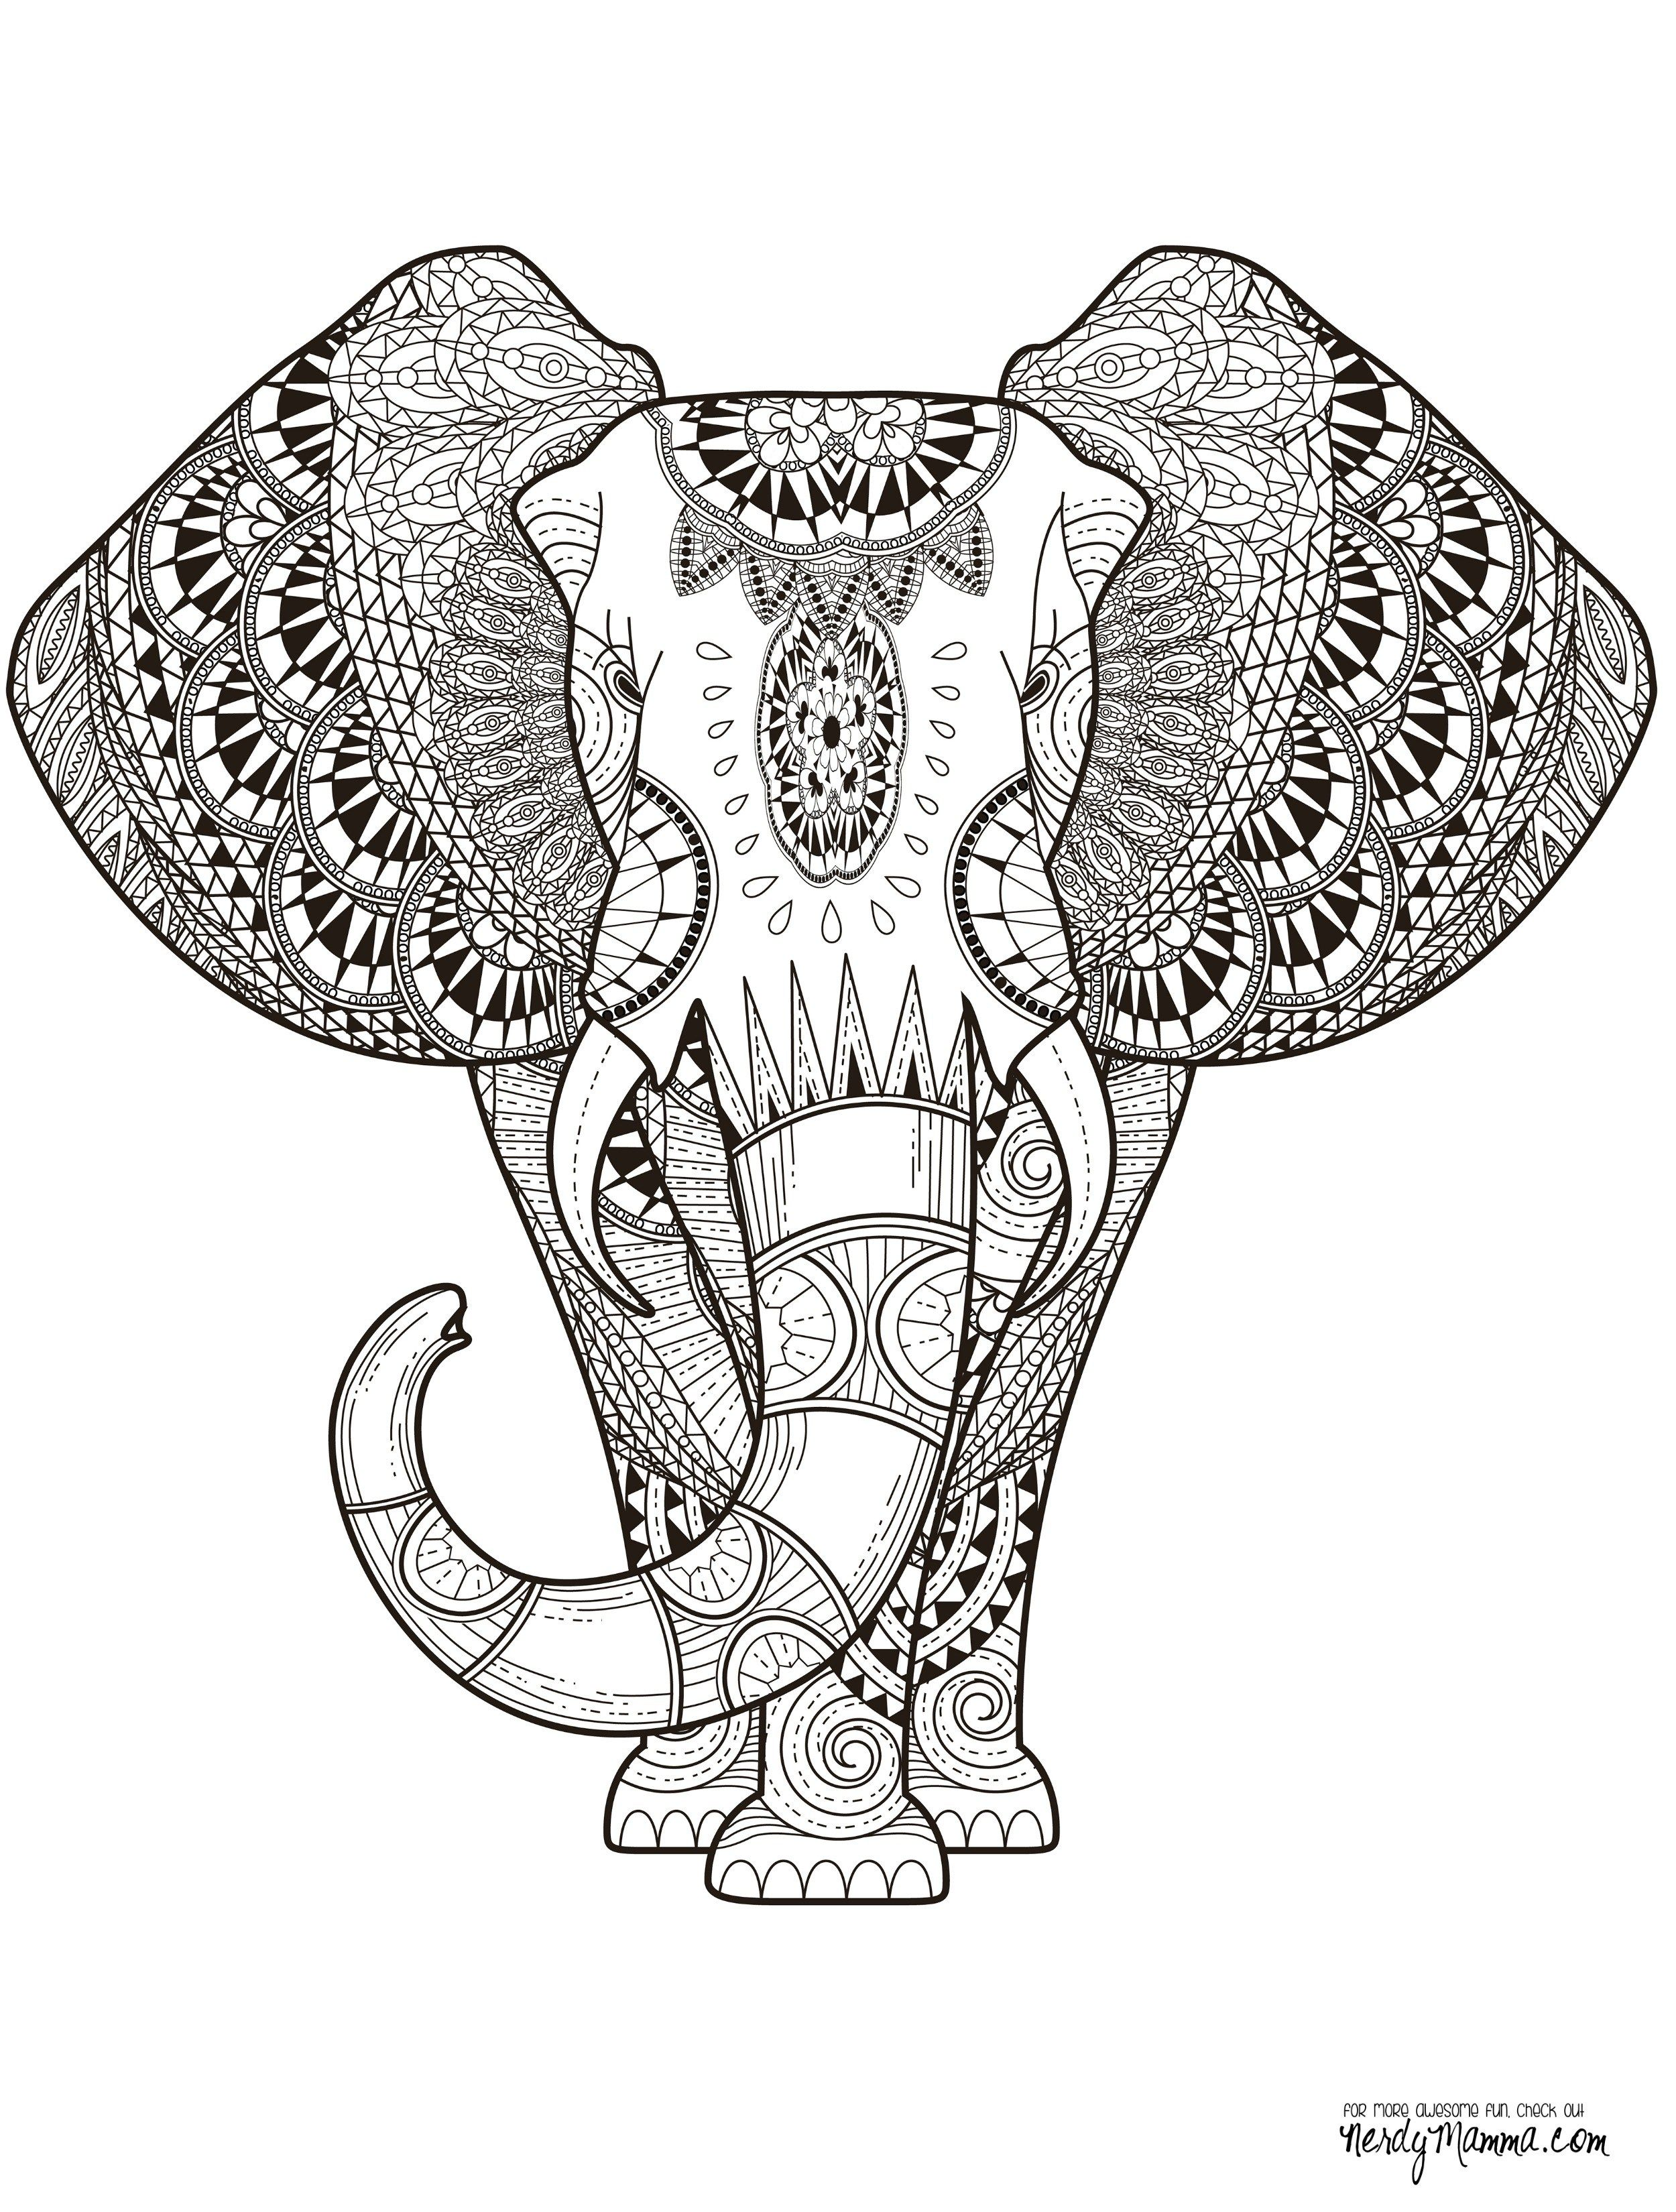 graphic about Elephant Coloring Pages Printable identify Elephant Summary Doodle Zentangle Paisley Coloring web pages